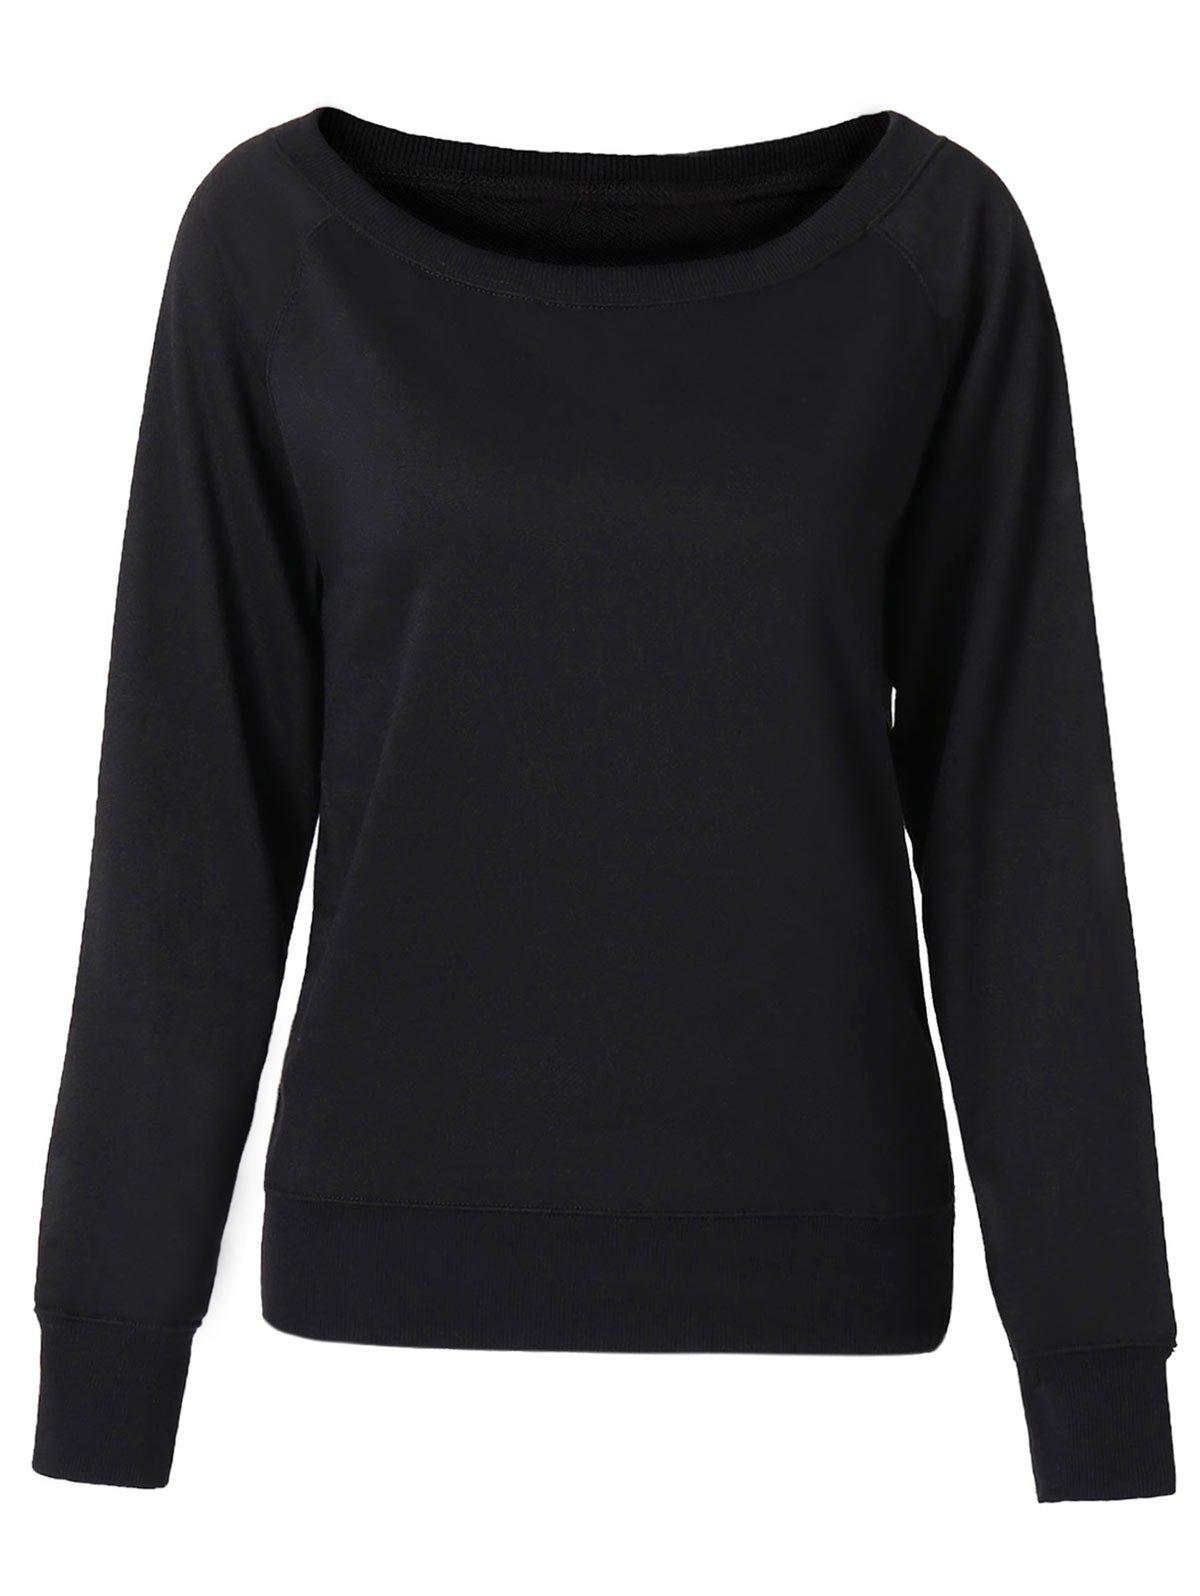 Cheap Chic Women's Pure Color Long Sleeve Sweatshirt